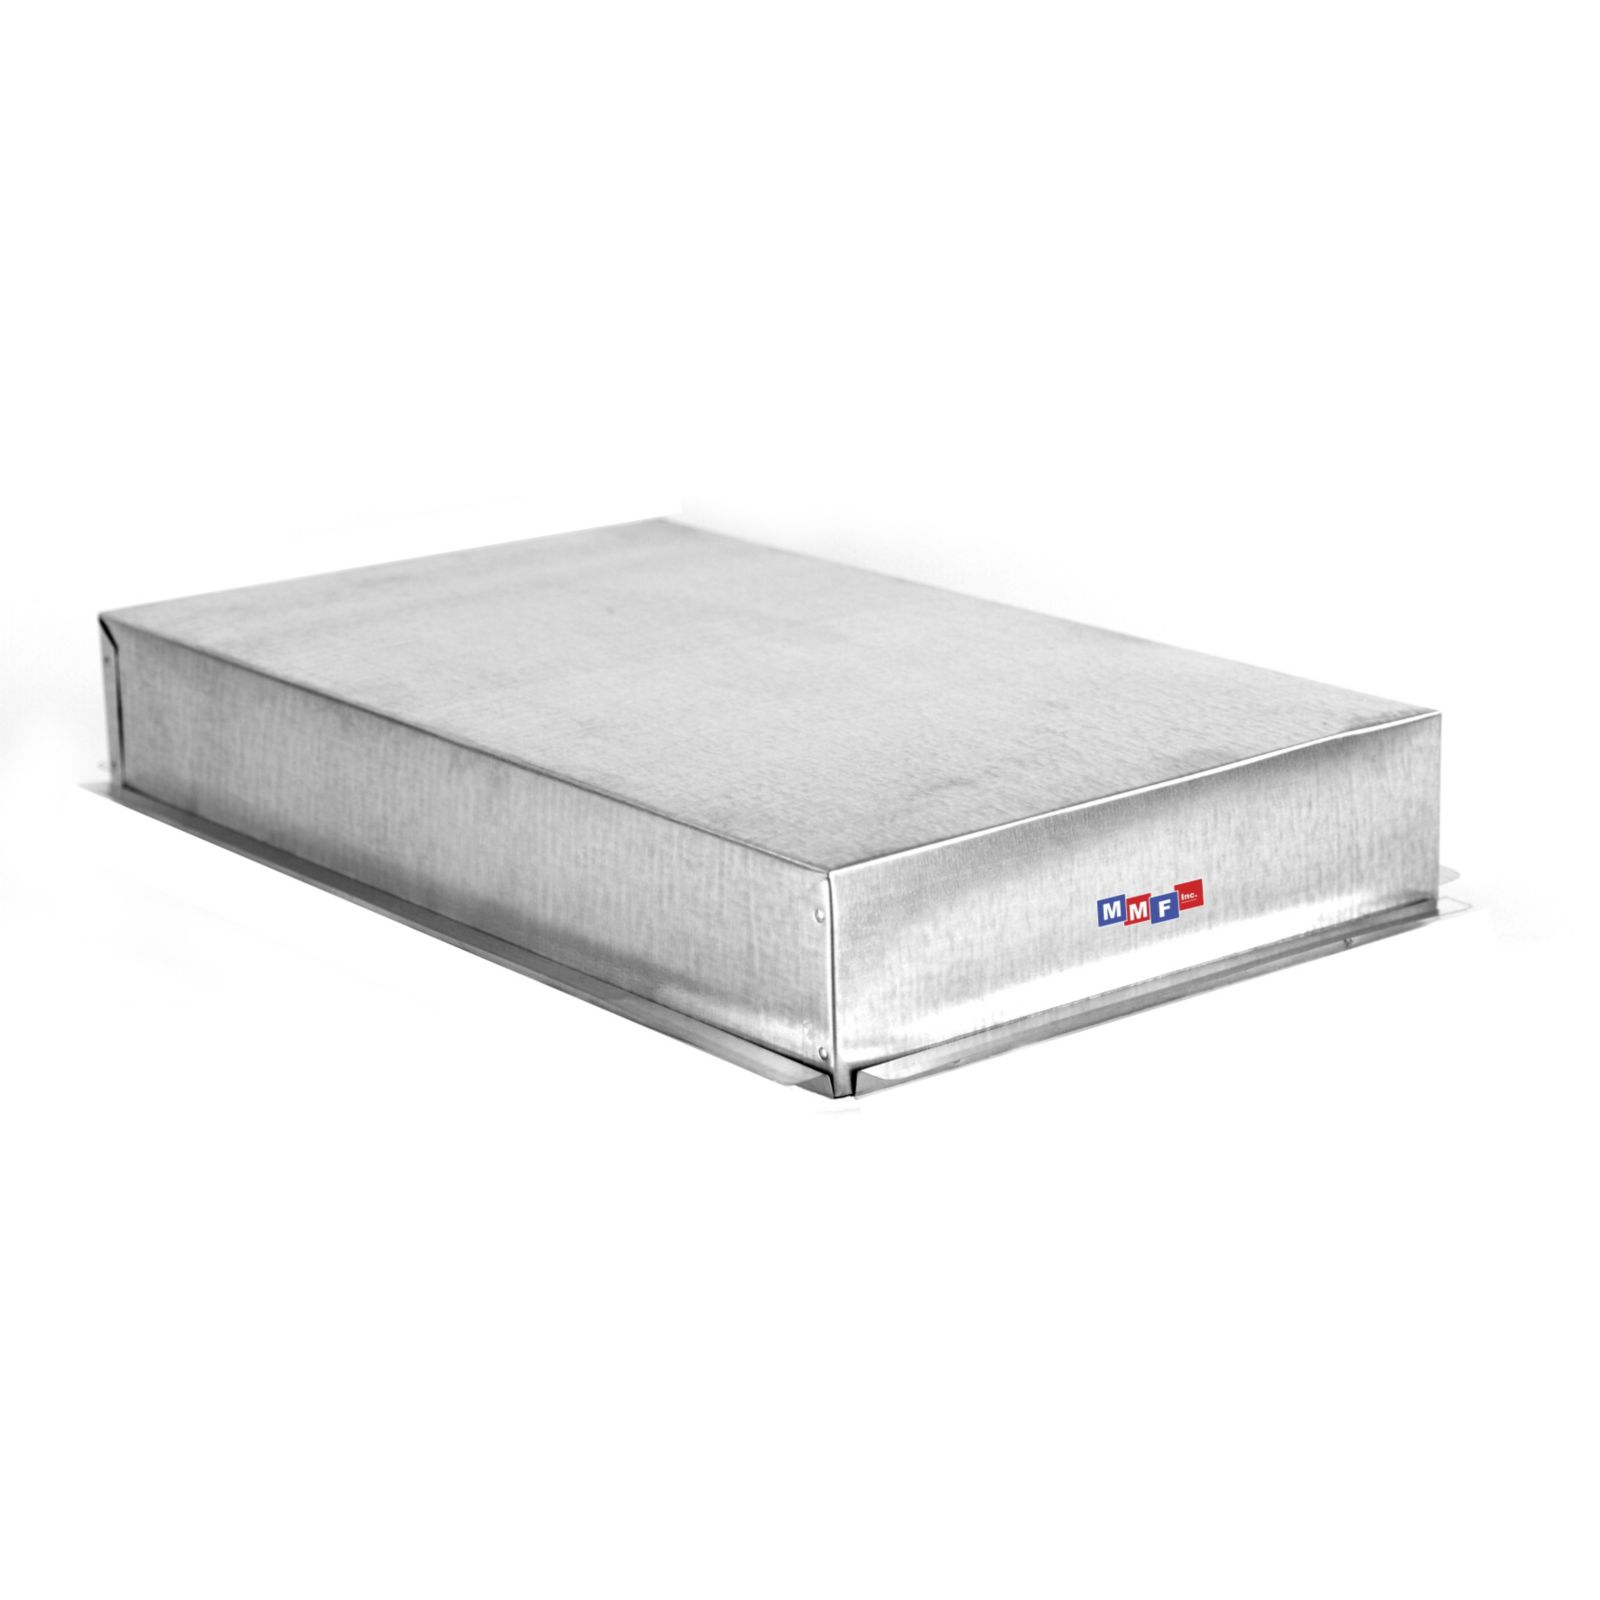 "Modular Metal ACRH3016HS - Return Air Can - 28 Ga - Seal All Seams 30 1/4"" X 16 1/4"" Uninsulated - 6"" High"